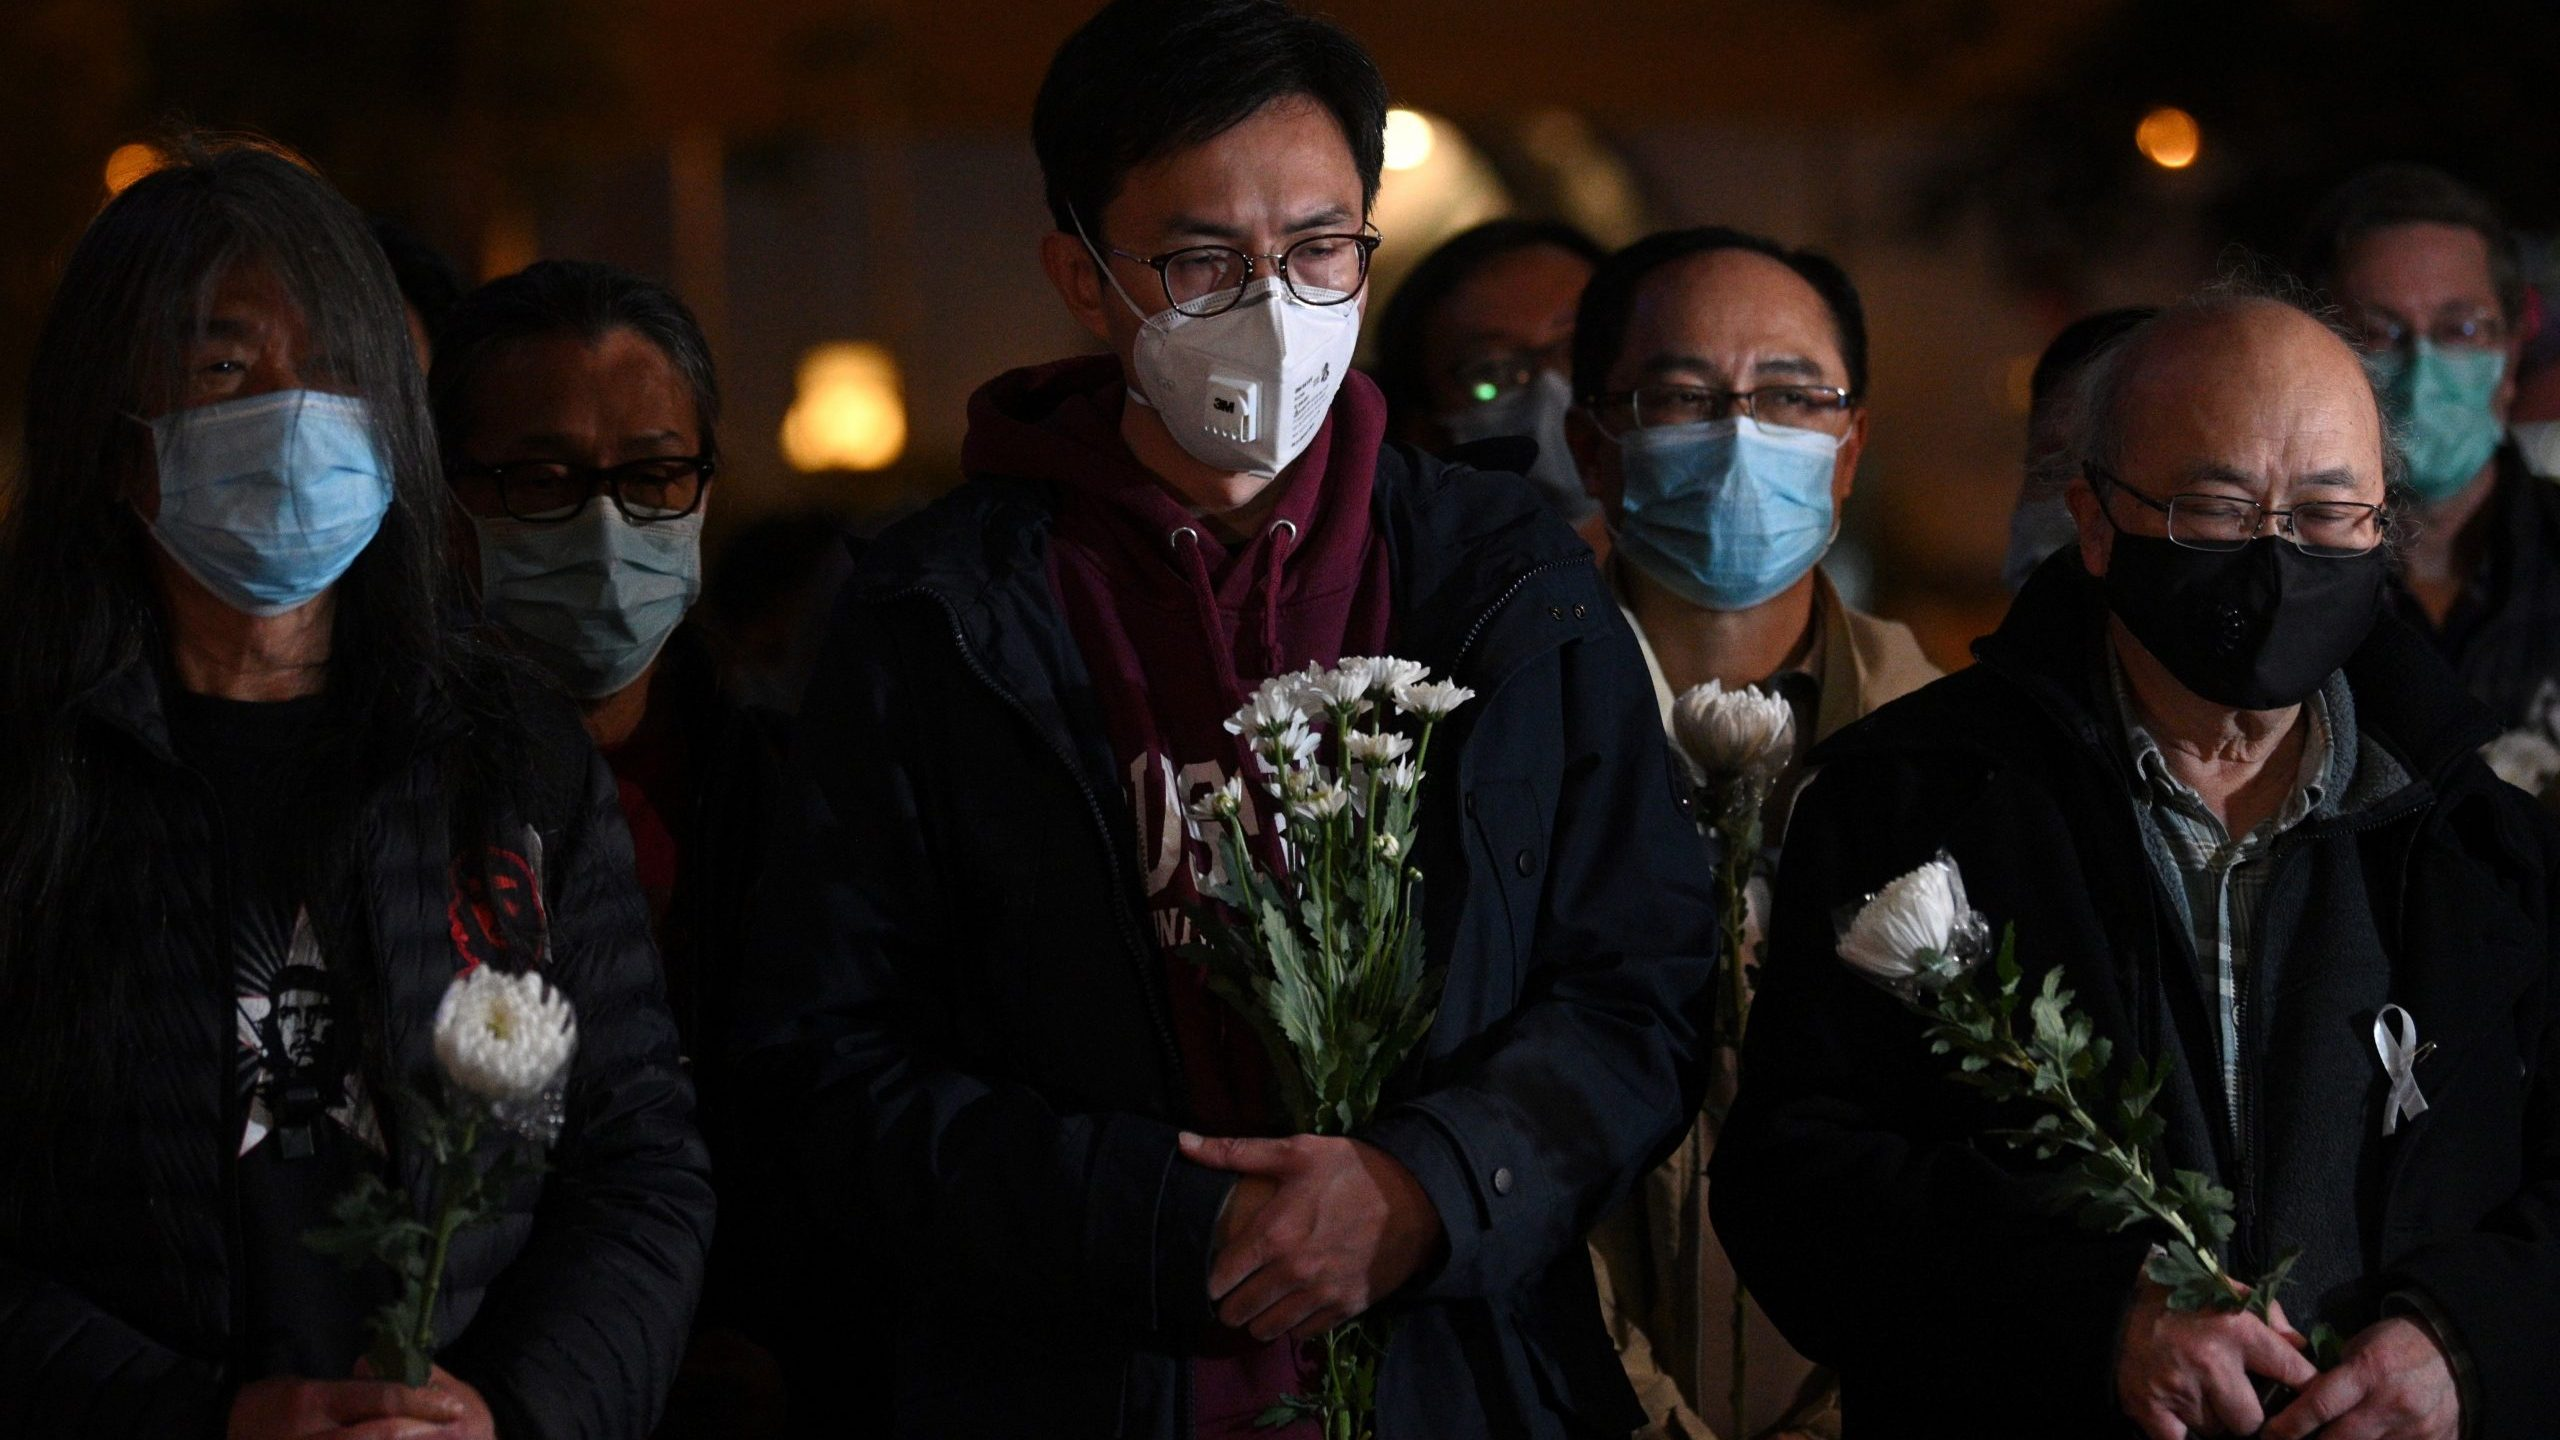 People attend a vigil in Hong Kong Feb. 7, 2020, for novel coronavirus whistleblowing doctor Li Wenliang, 34,who died in Wuhan after contracting the virus while treating a patient. (Credit: ANTHONY WALLACE/AFP via Getty Images)